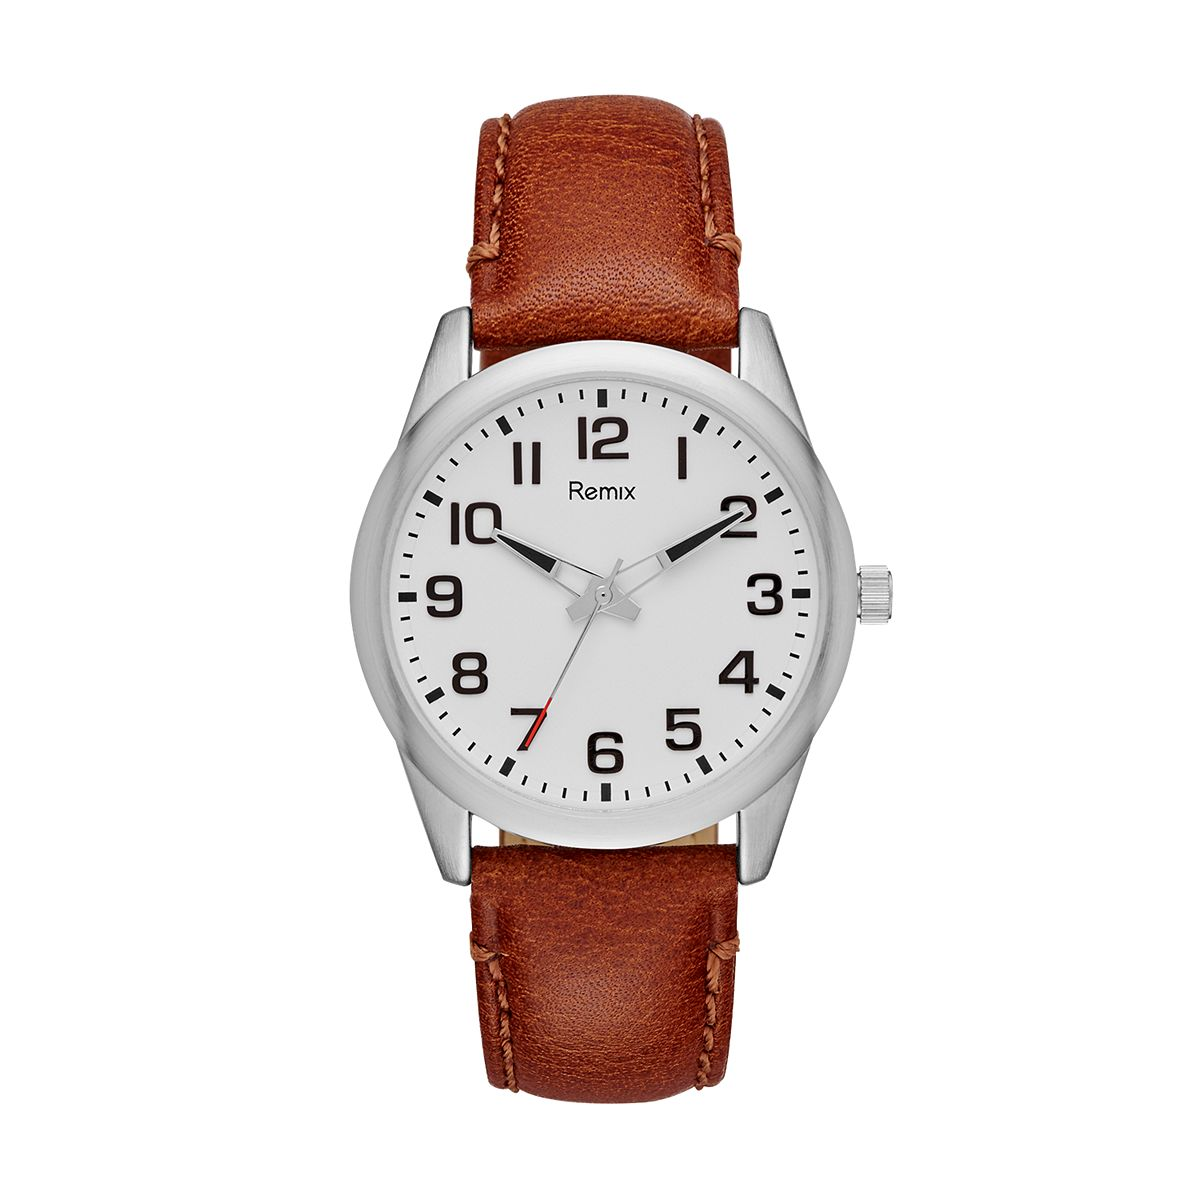 Classic Brown PU Leather Watch / Promotional product fully custo